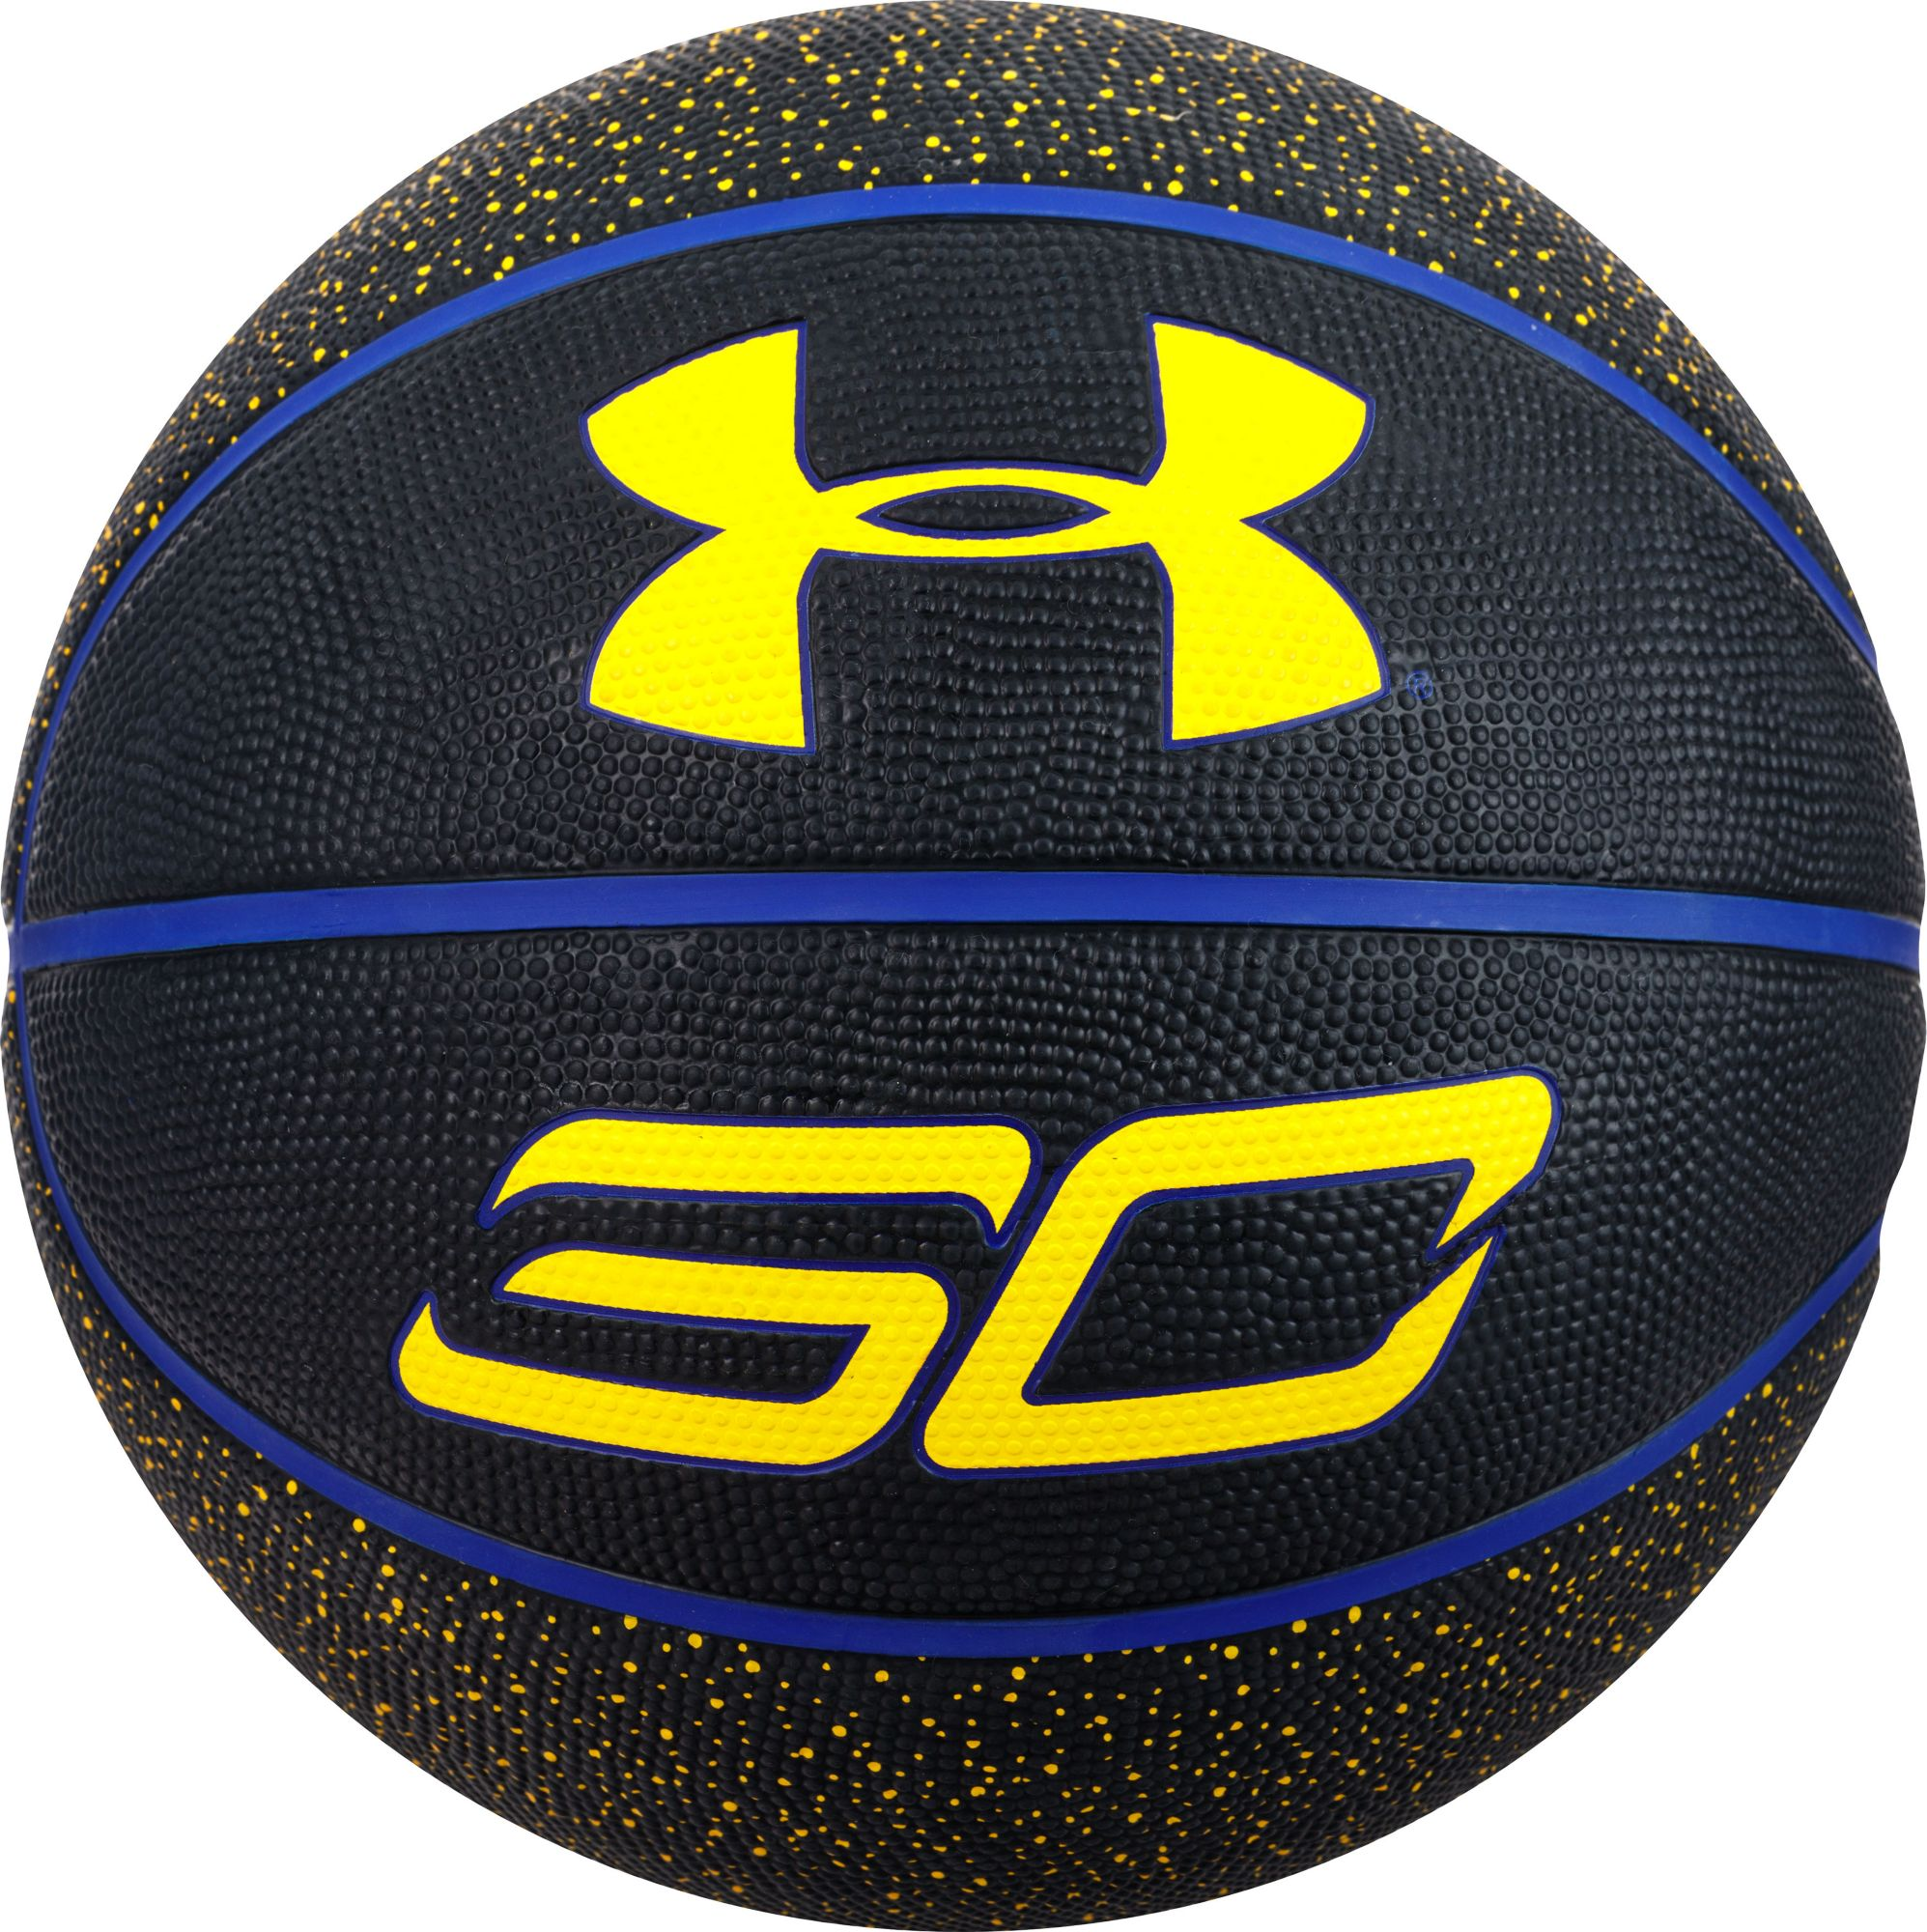 Under Armour Stephen Curry 25 Basketball 285 Dicks Sporting Goods